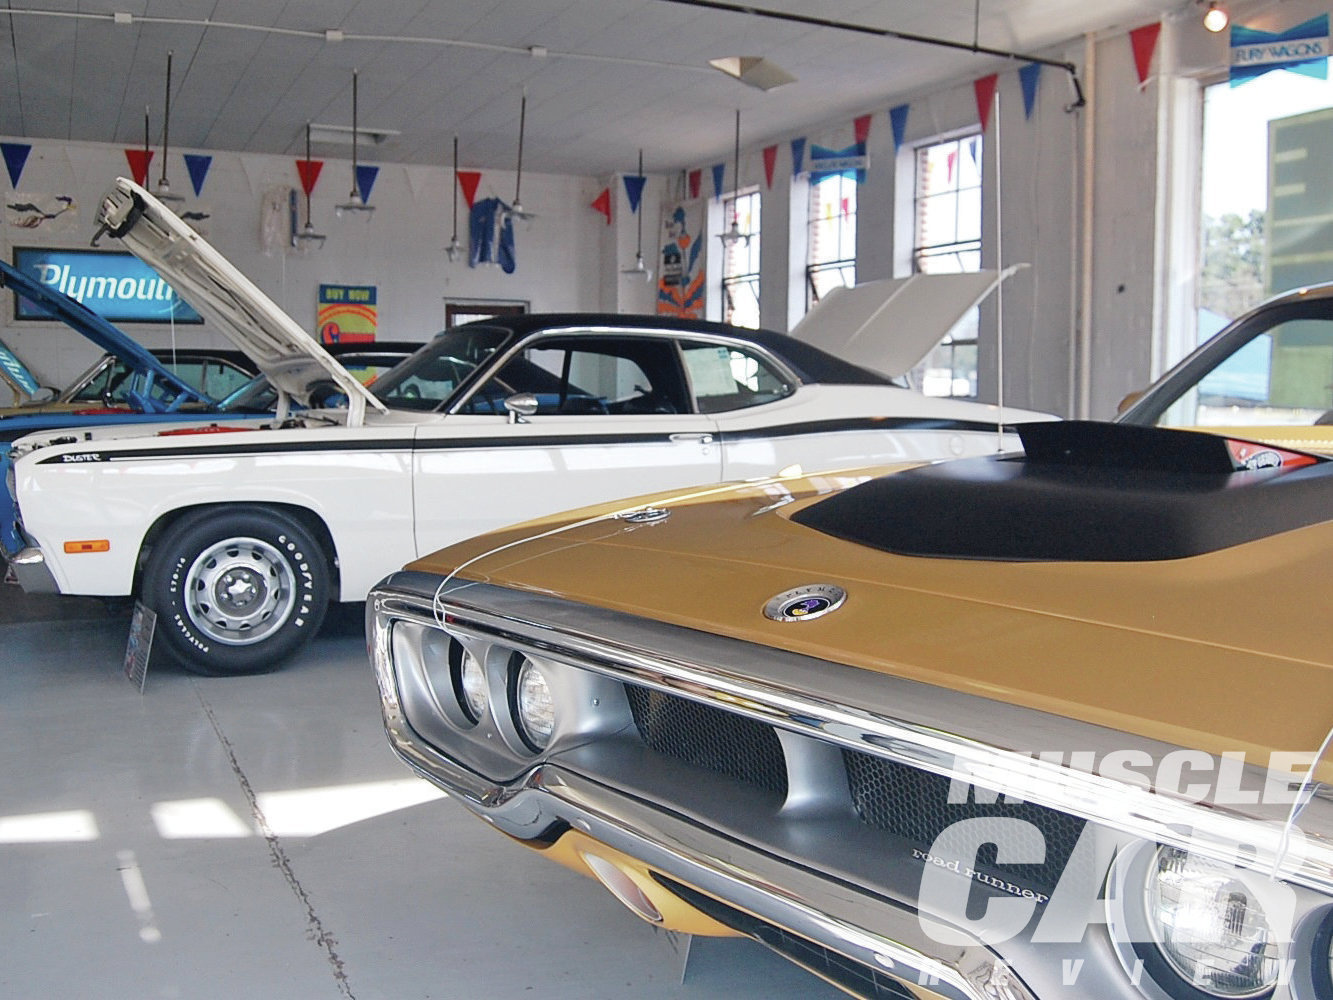 Carlisle's Beeney Motors was dressed out like a Chrysler dealership, circa 1972. Among the cars in the showroom were this '72 Duster and Road Runner, both powered by 340s.